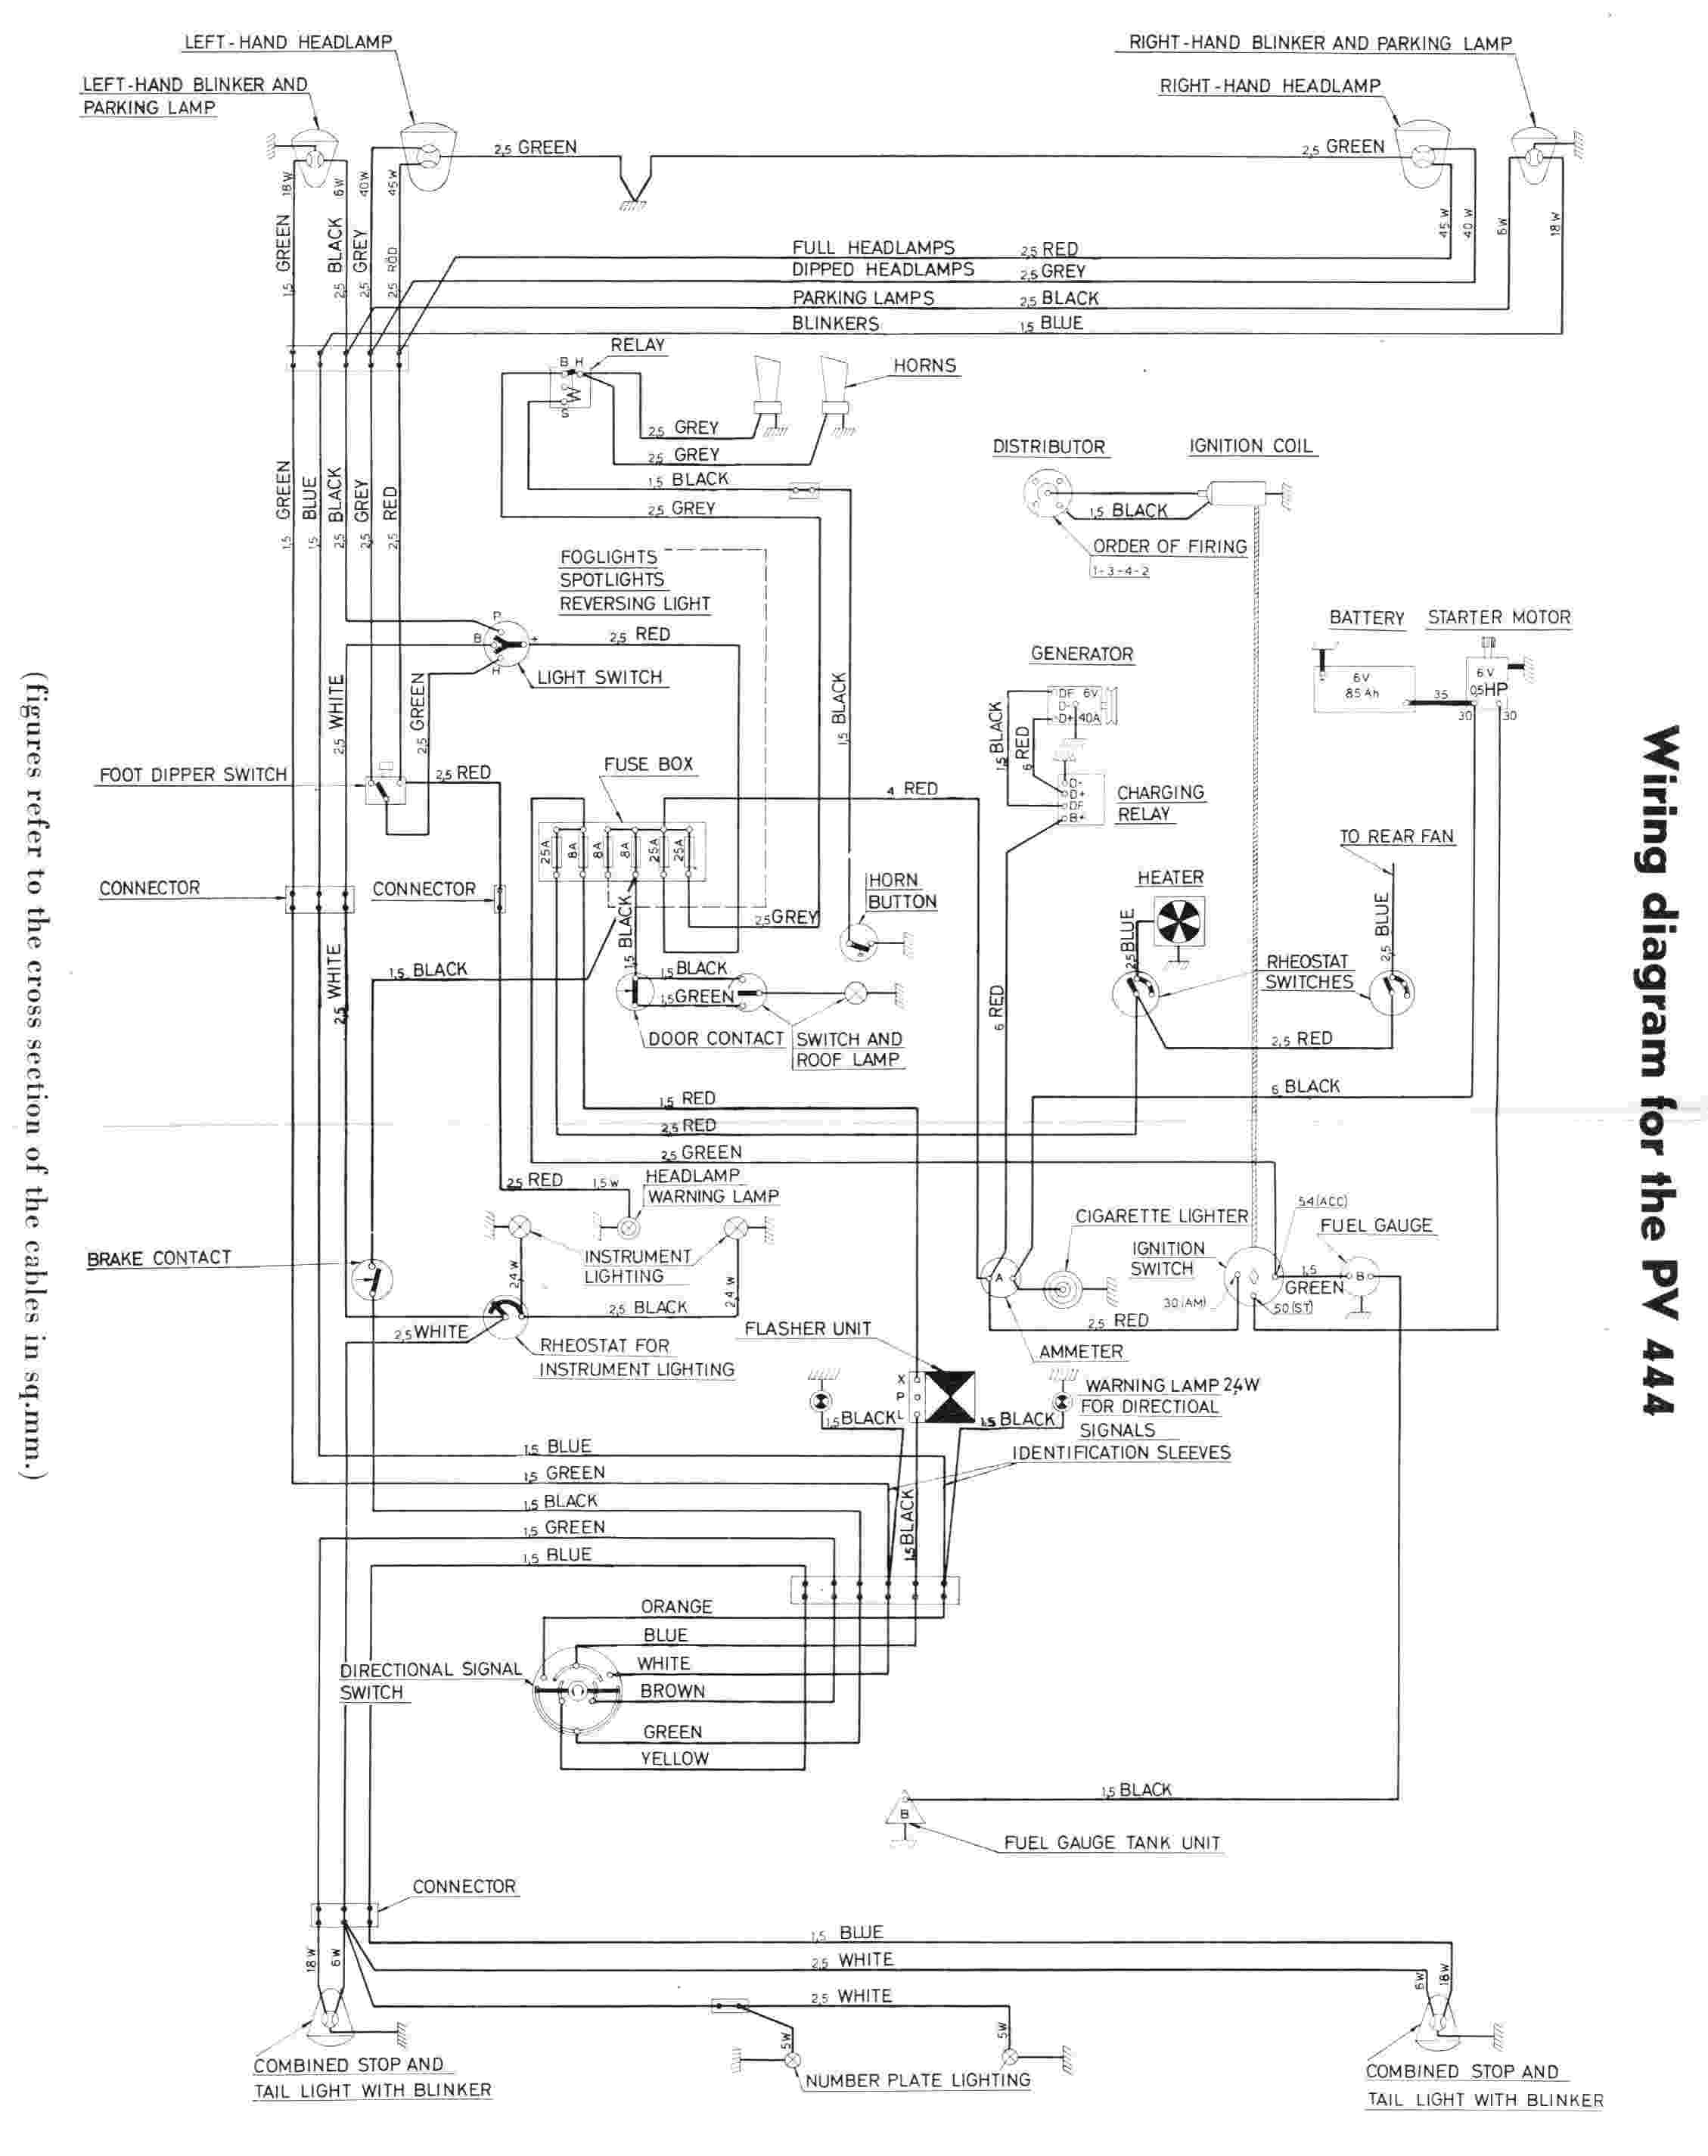 hight resolution of wiring diagram oldsmobile wiring diagrams volvo wiring diagrams 1997 volvo v70 electrical diagram volvo amazon wiring diagram